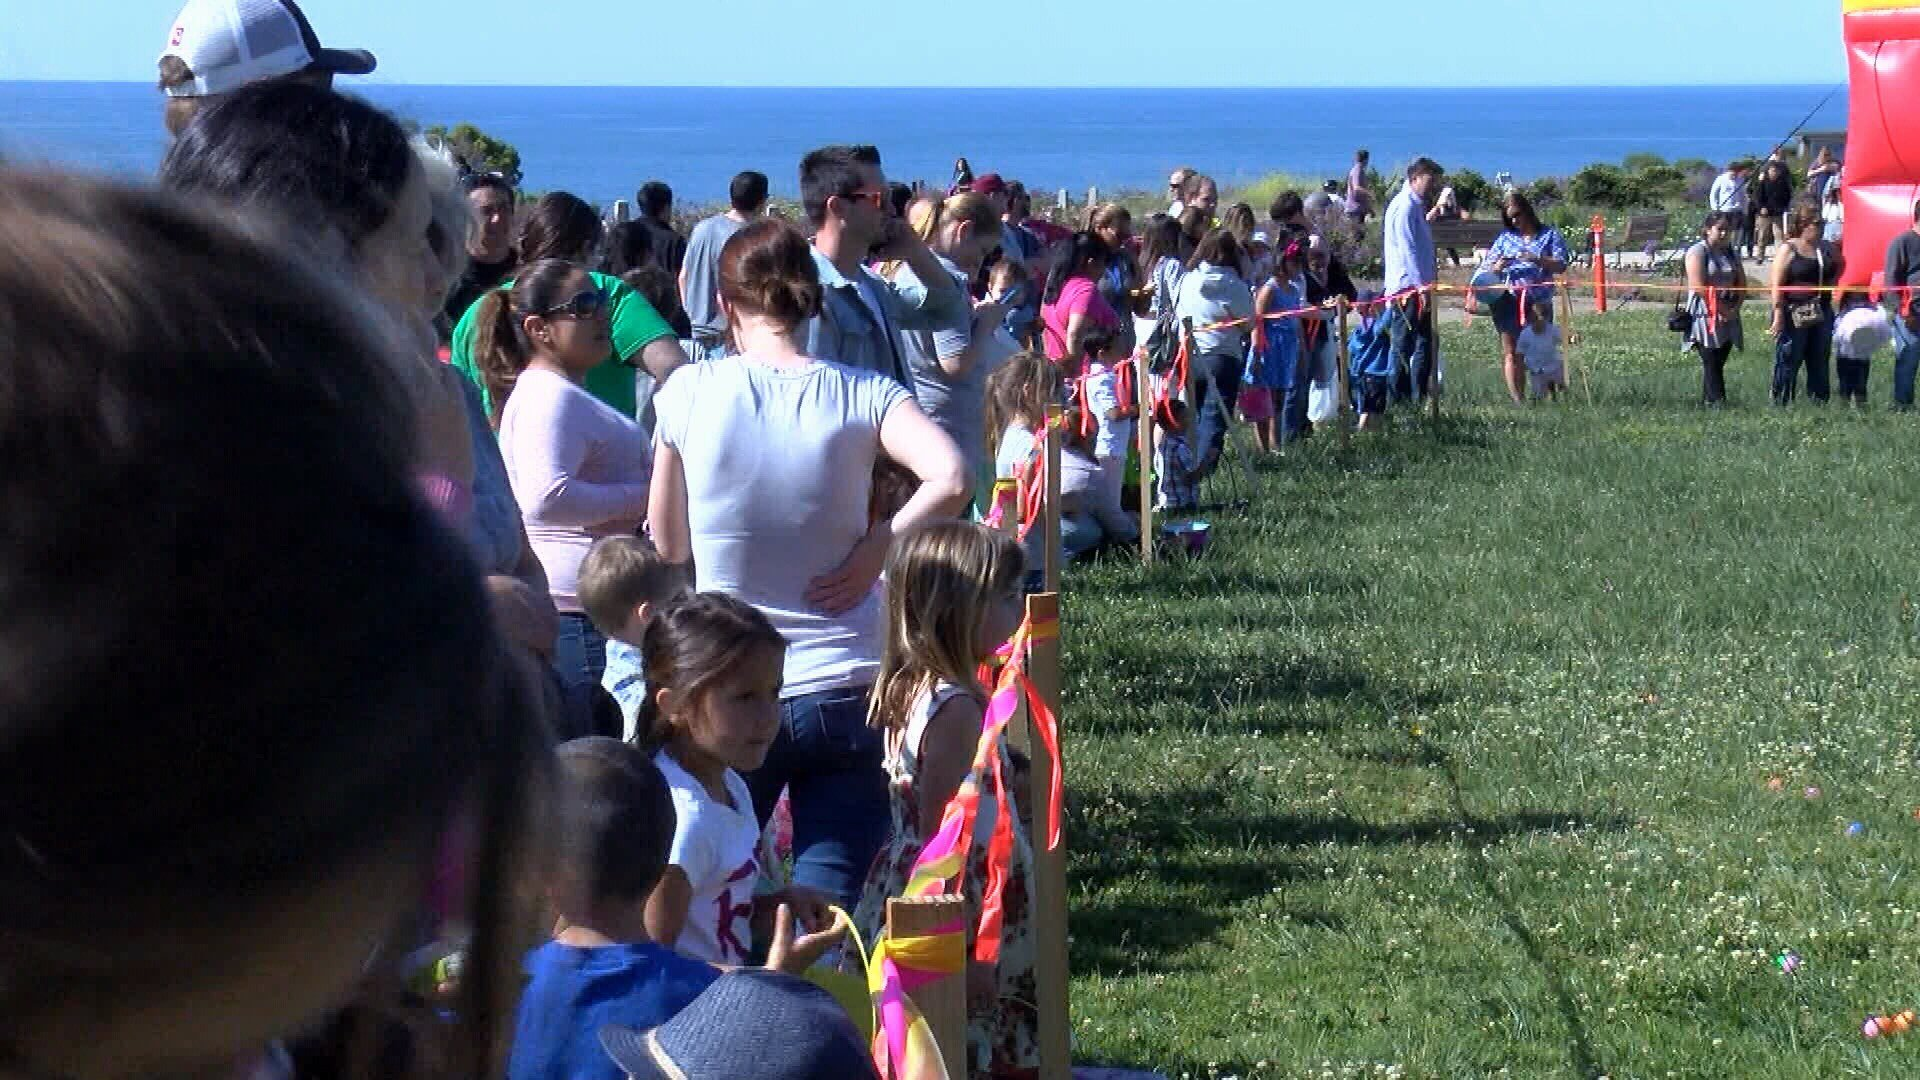 SCV Kids Crowd Central Park For 28th Annual Eggstravaganza